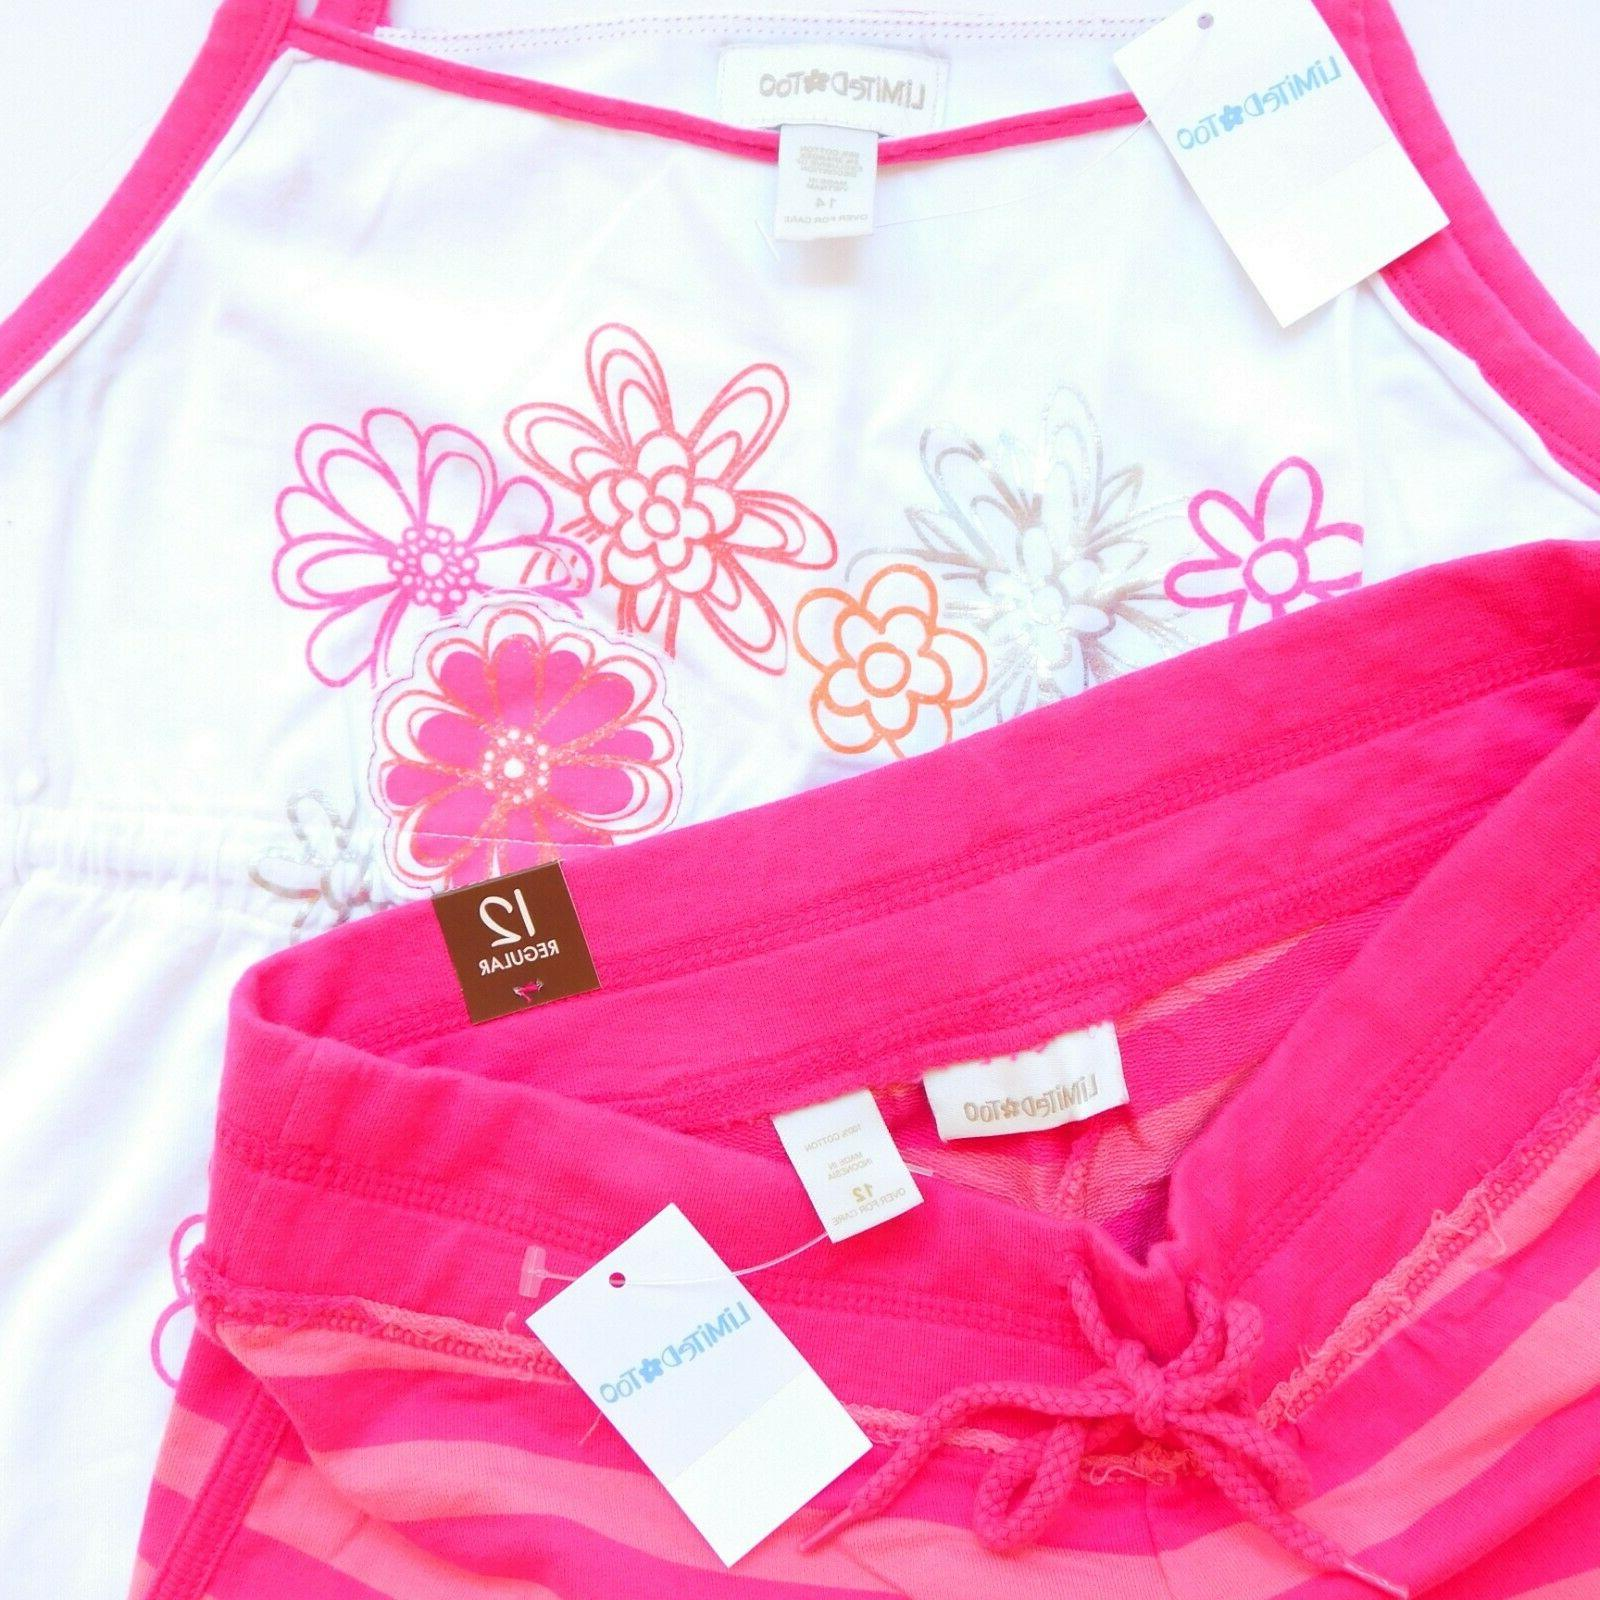 NWT Girls Justice Limited Too Summer Tops Shorts Lot New